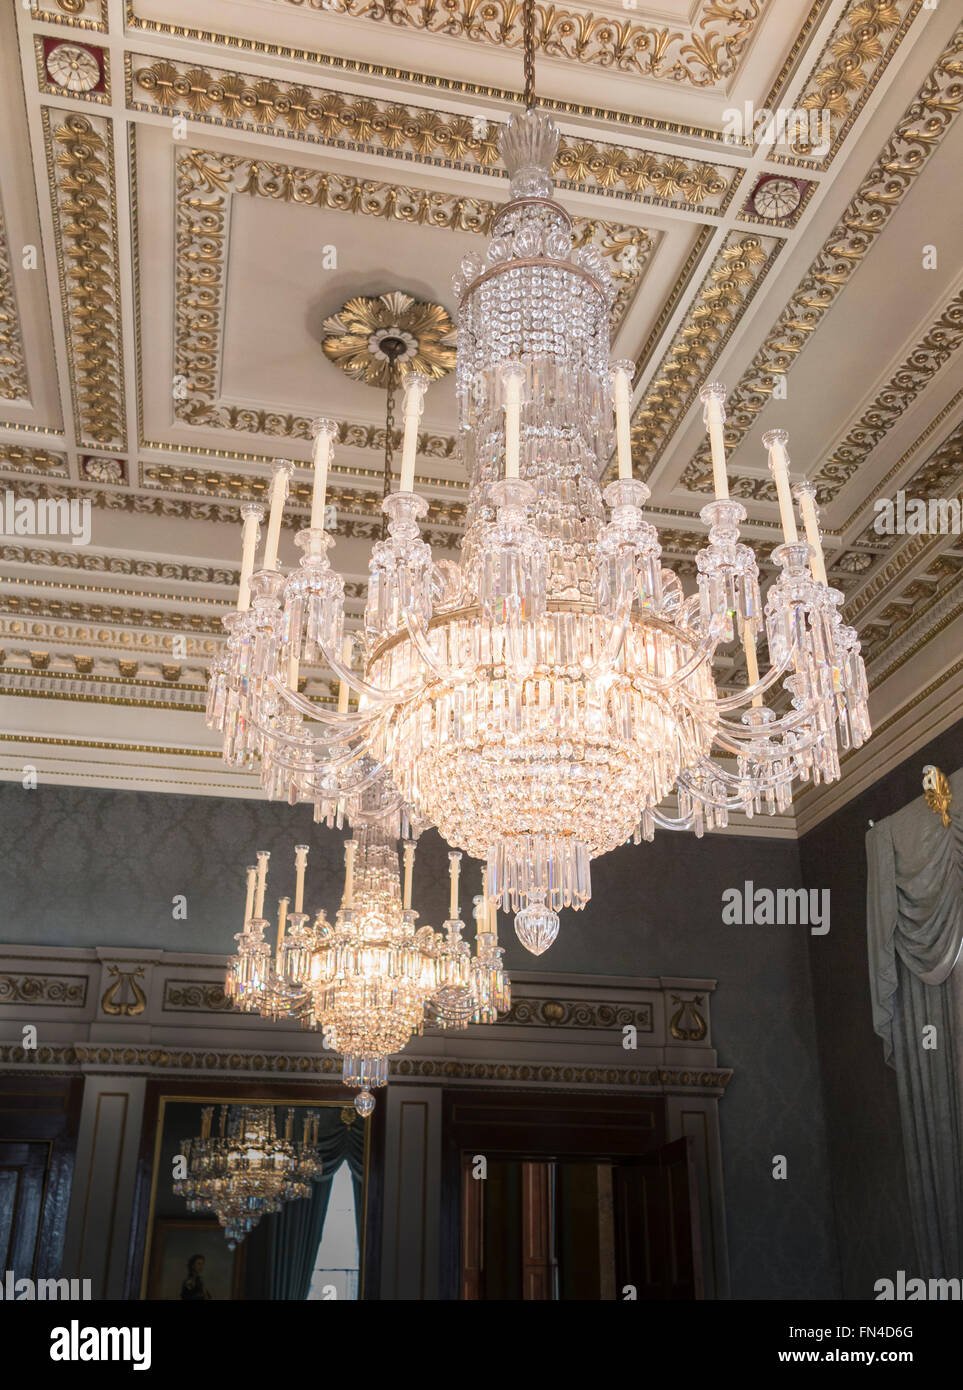 Crystal Chandeliers Stock Photos & Crystal Chandeliers Stock ...